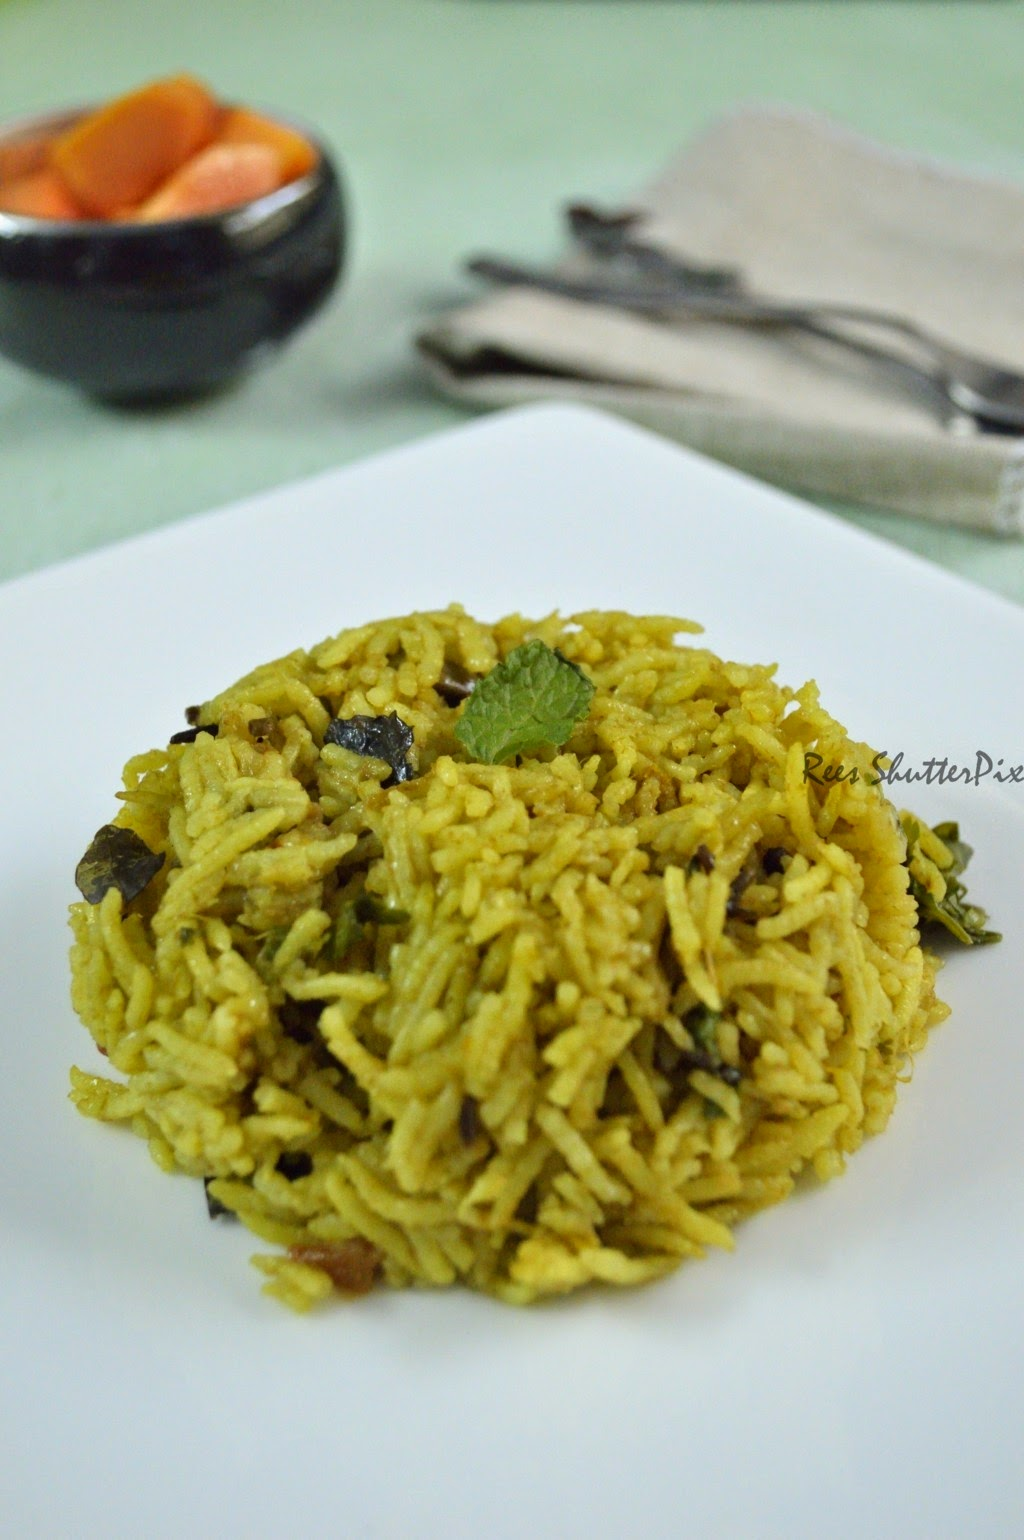 millet mushroom briyani, mushroom recipes, briyani easy recipes, step by step recipes, veg briyani recipes